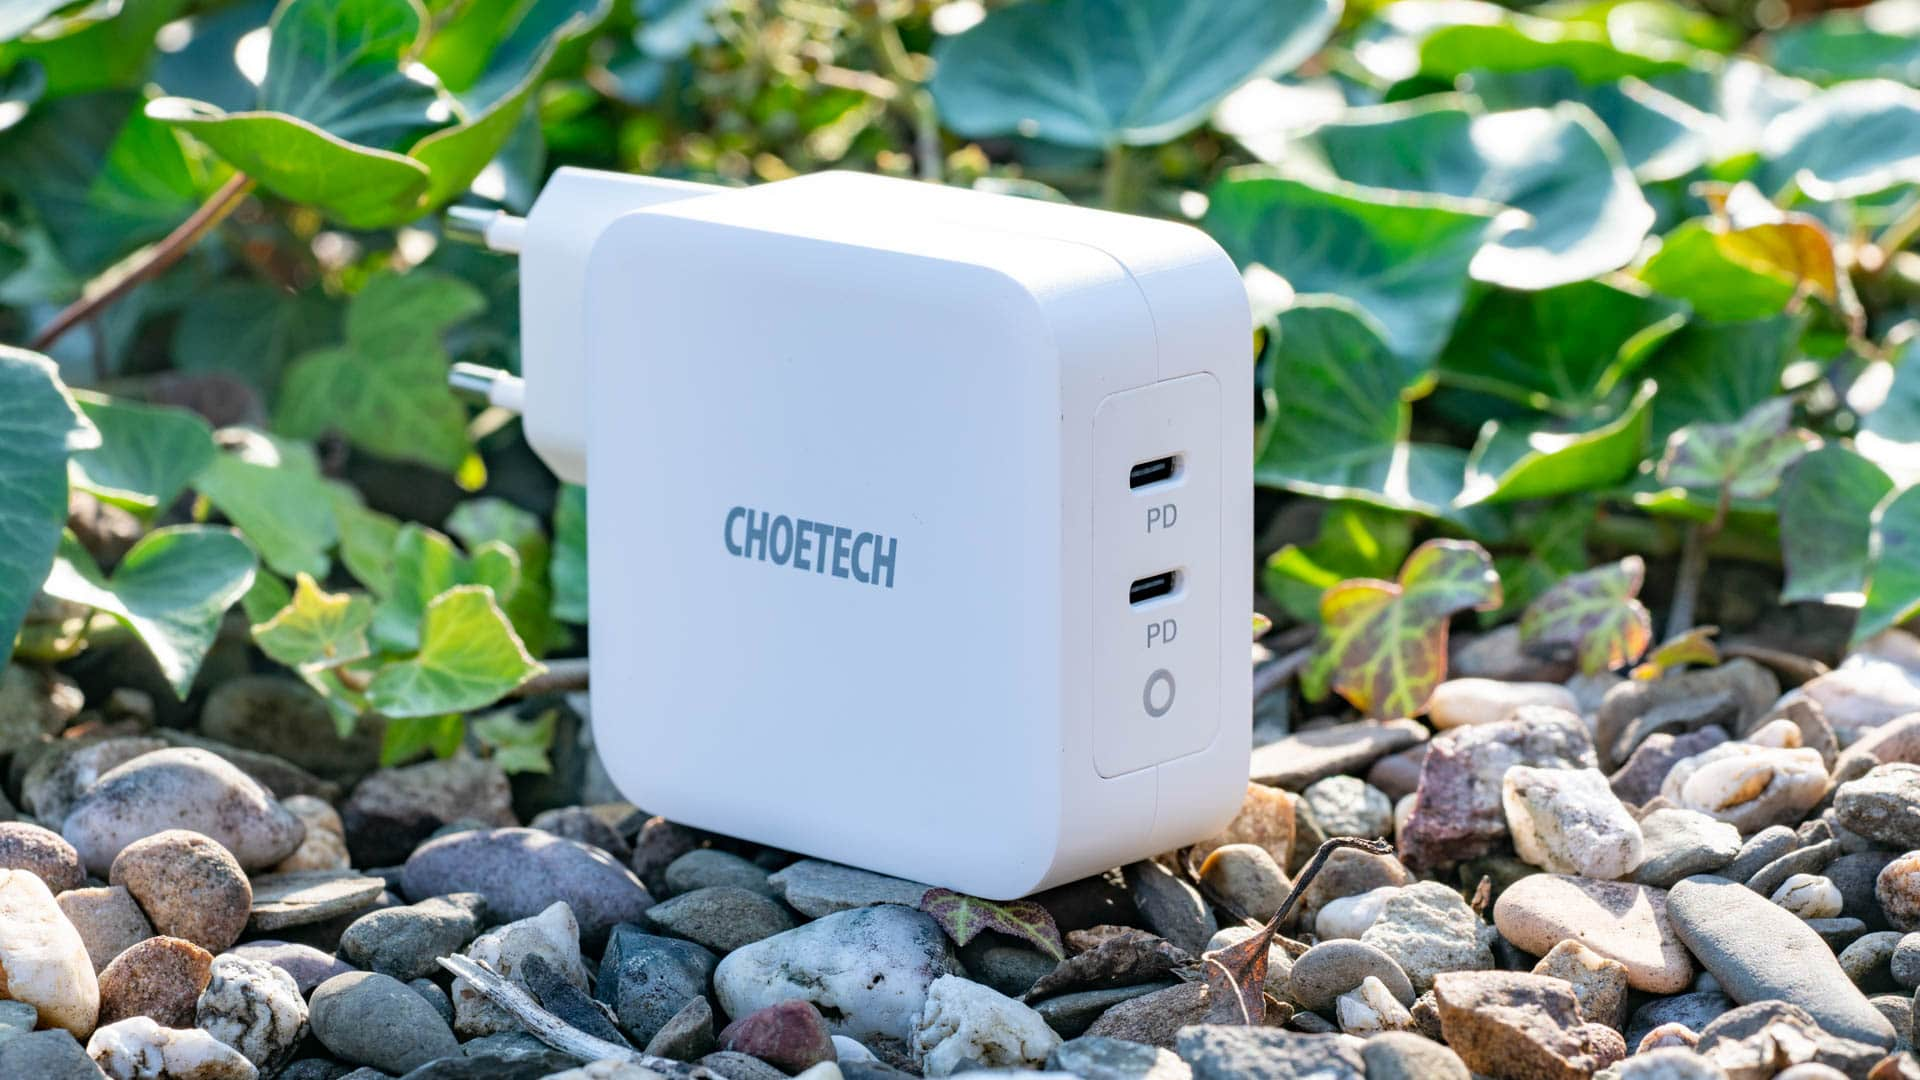 Der CHOETECH PD6008 100W 2-Port GaN Wall Charger im Test